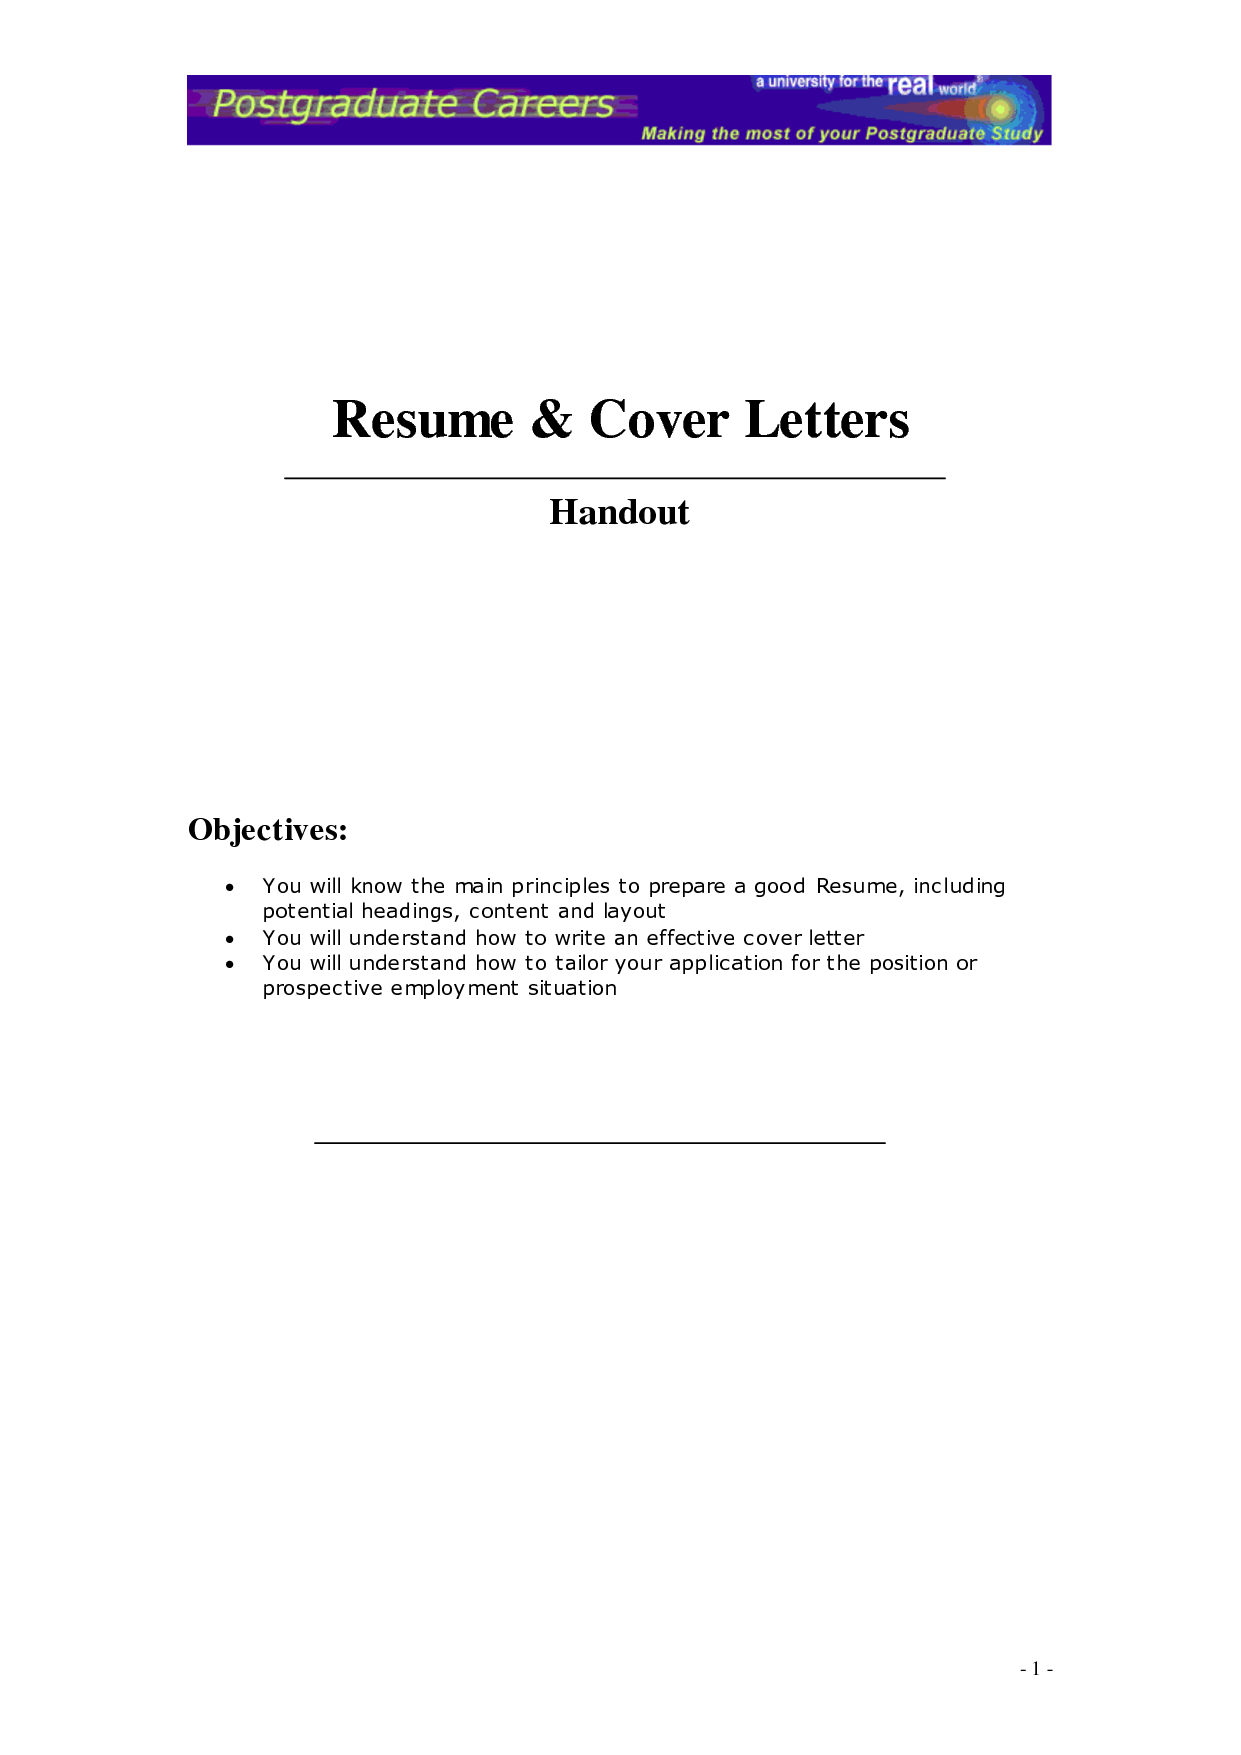 resume cover letter template we provide as reference to make – Making Cover Letter